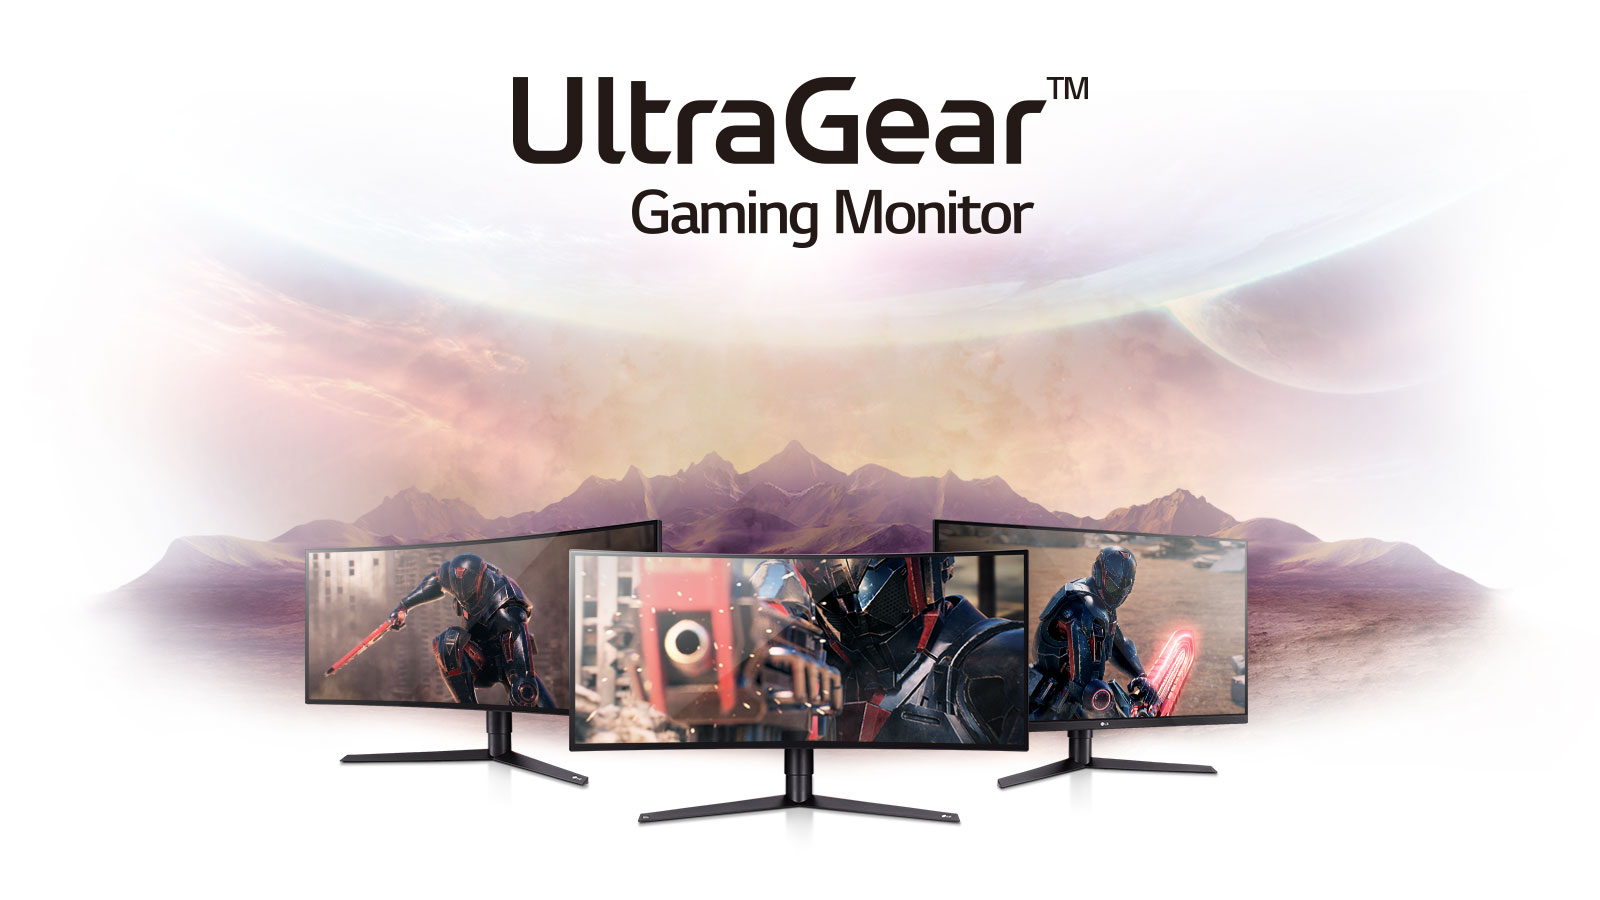 IFA 2019: LG Expands The UltraGear Line Of Gaming Monitors With A 240Hz Model, The New LG 27GN750